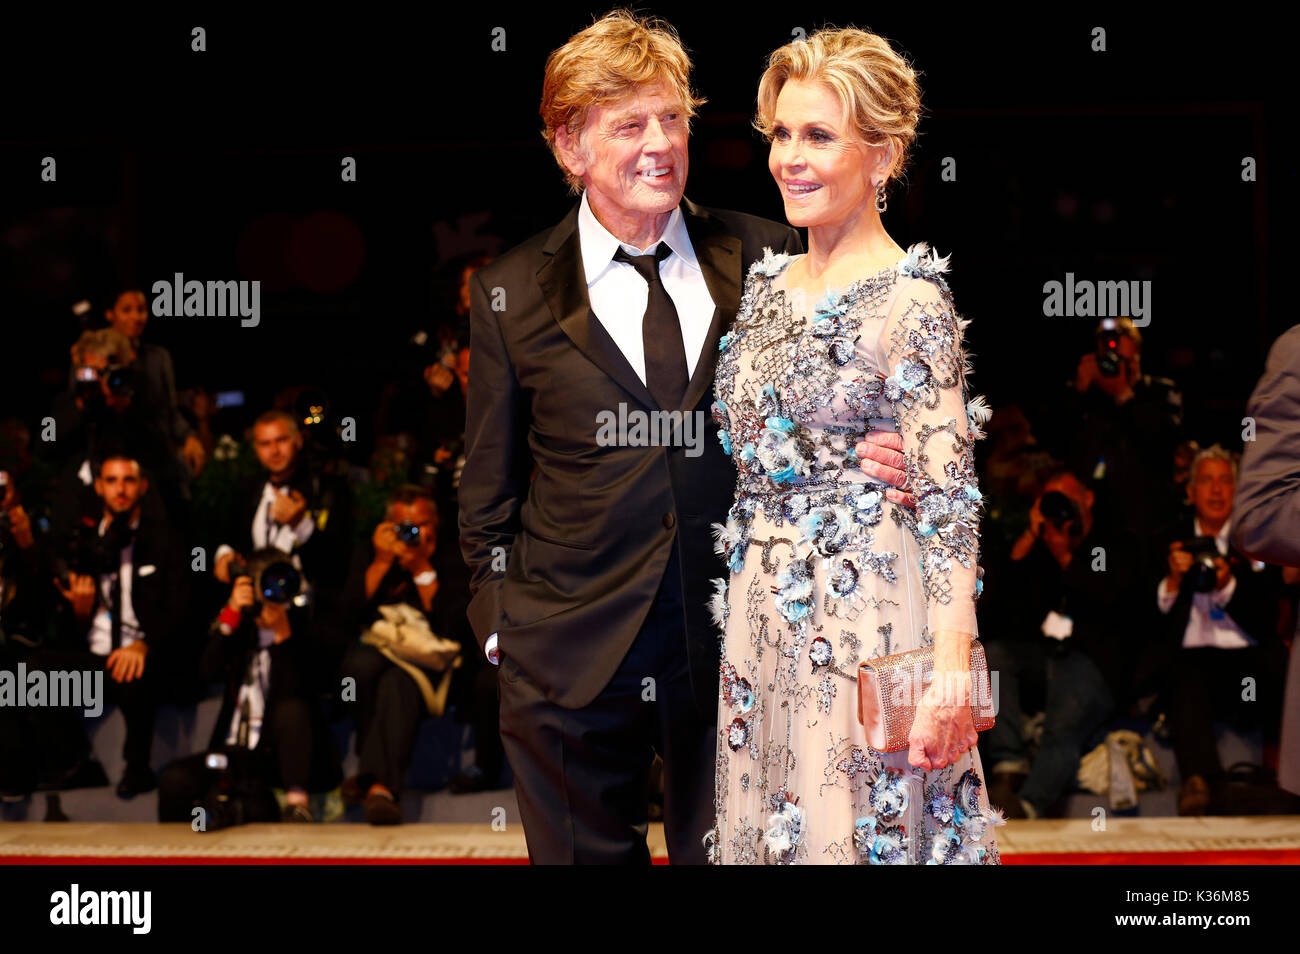 Robert Redford and Jane Fonda attending the 'Our Souls at Night' premiere at the 74th Venice International Film Stock Photo